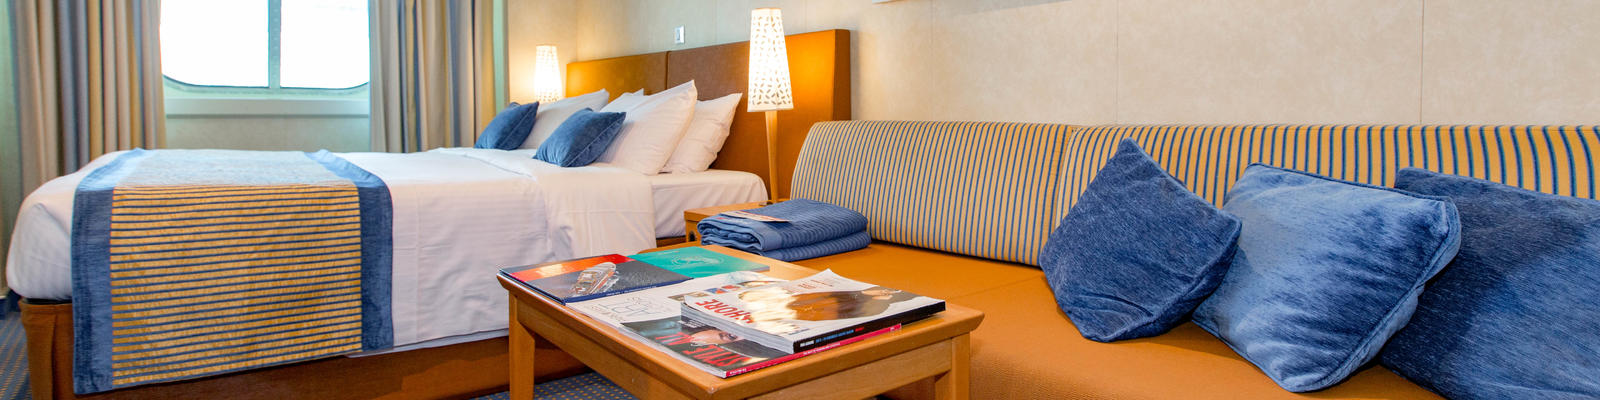 How to Sanitize Your Cruise Cabin in 12 Steps